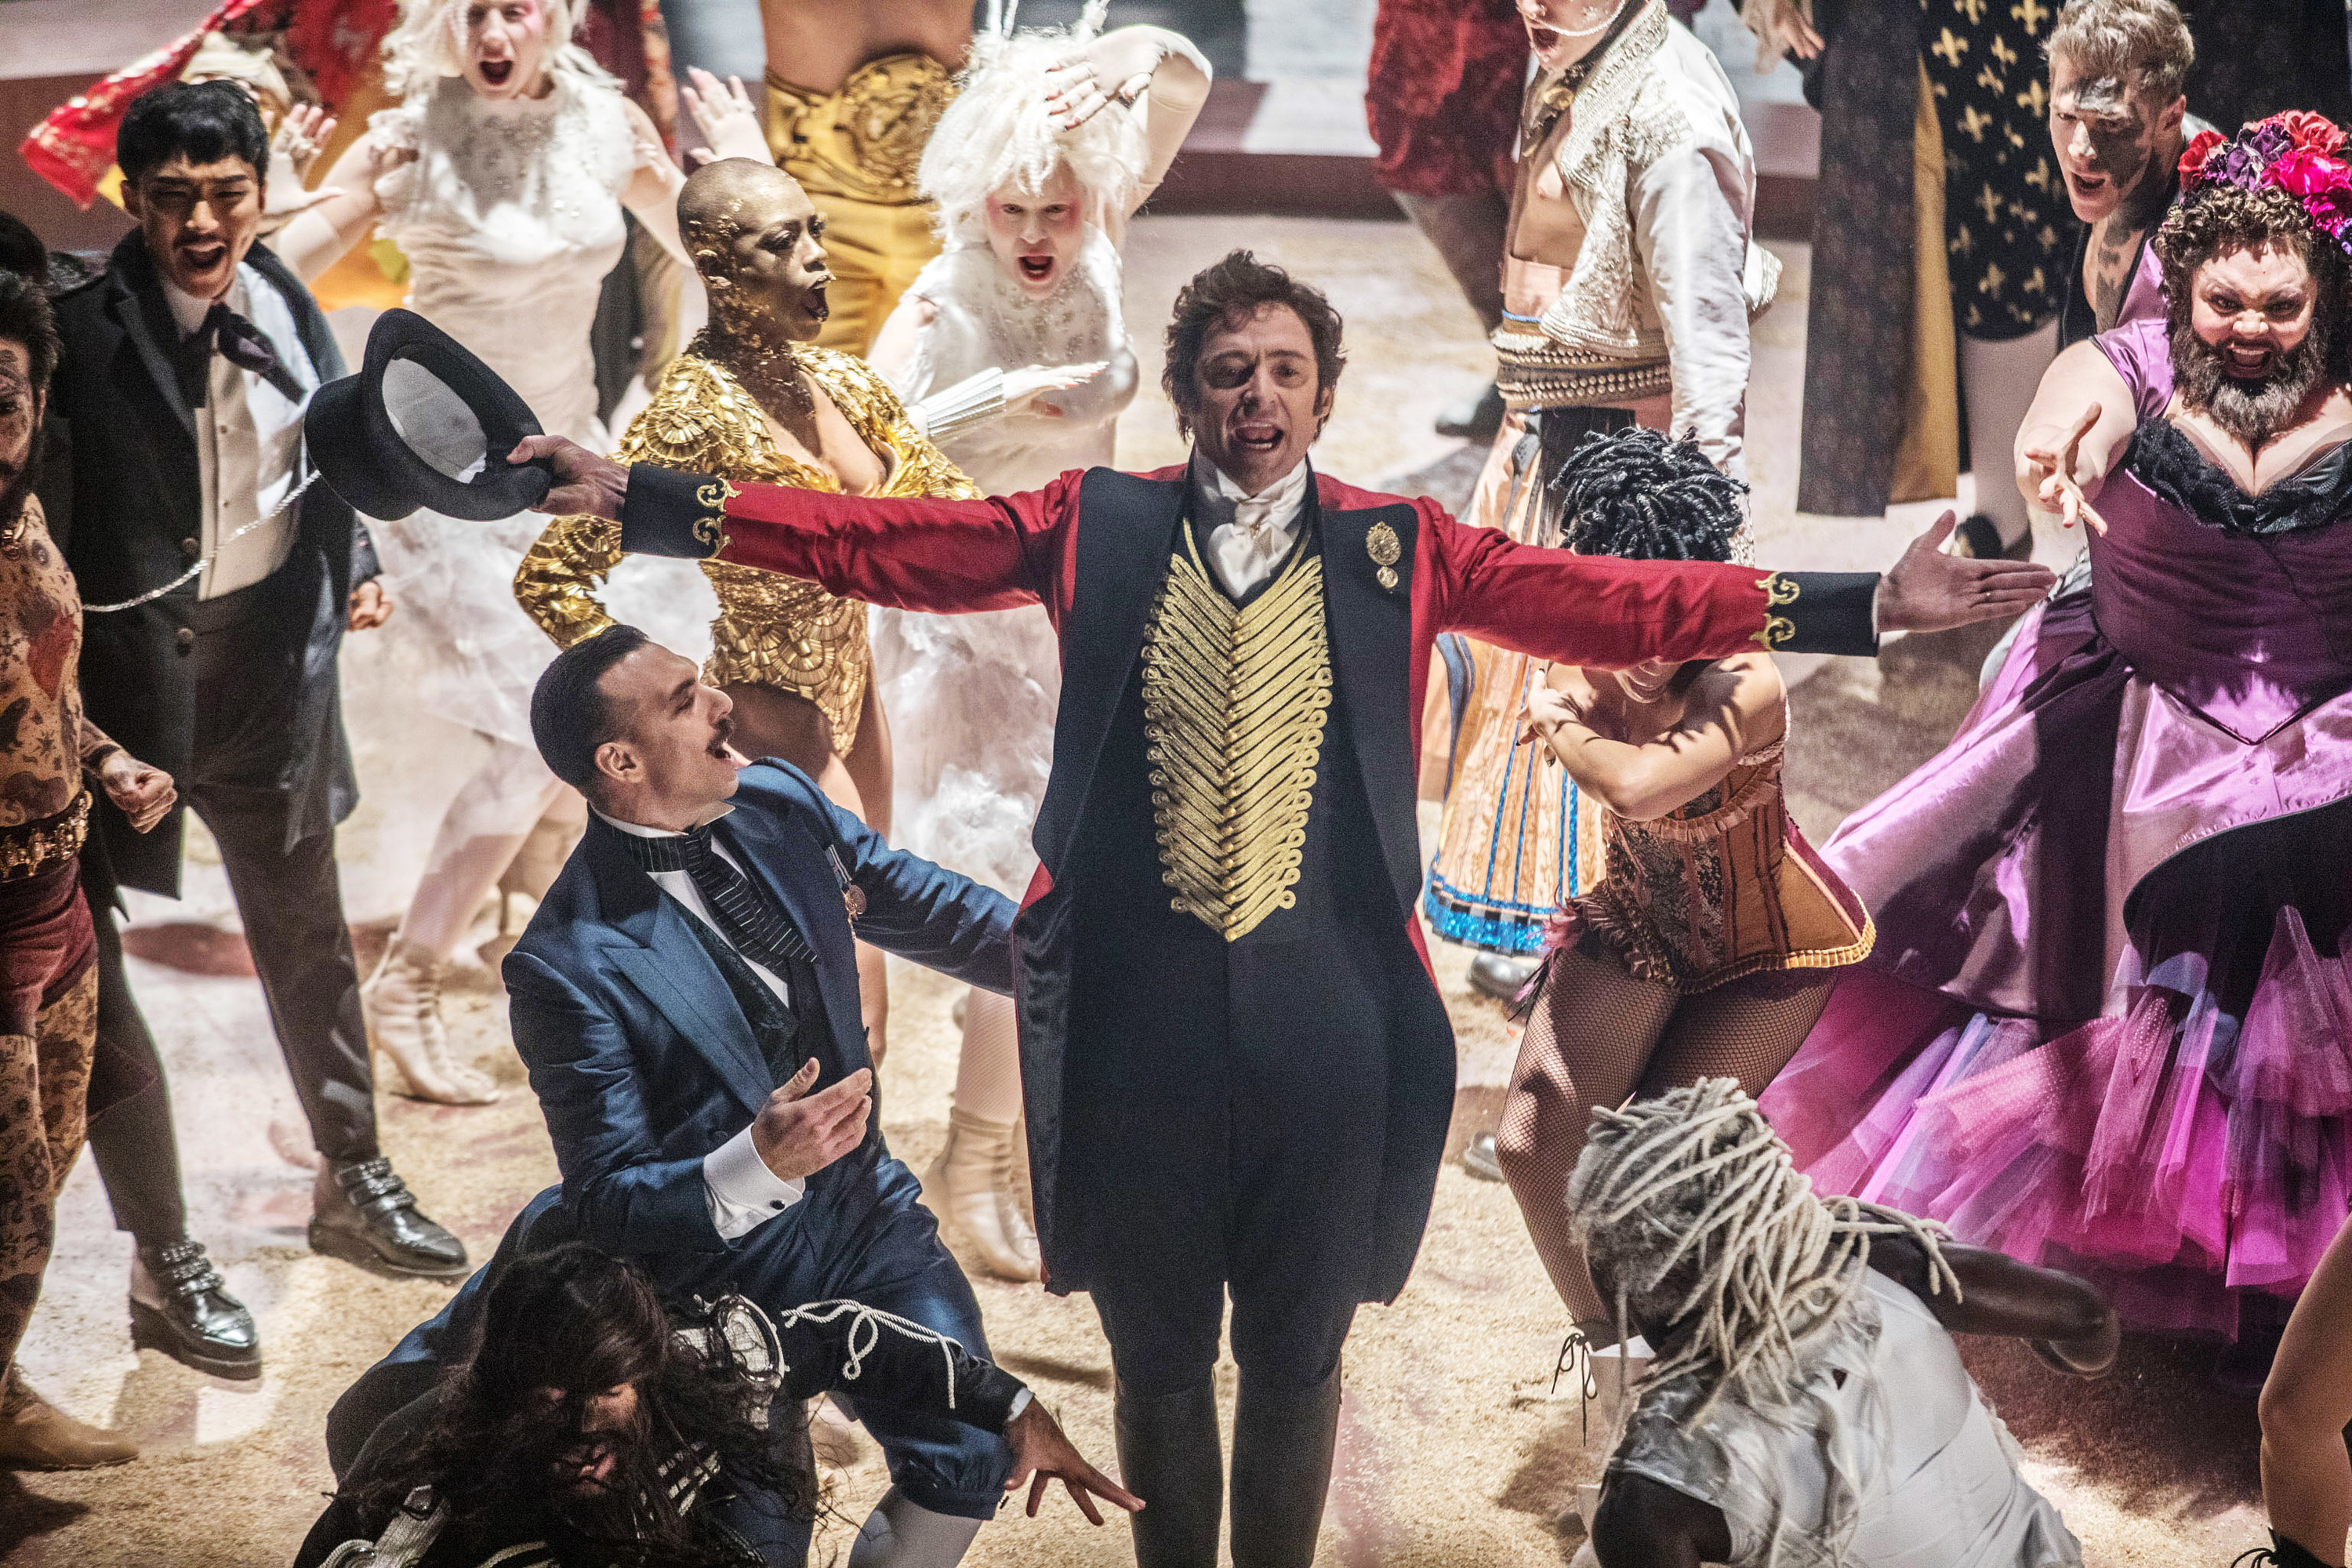 Hugh Jackman at the center of the cast of the greatest showman performing